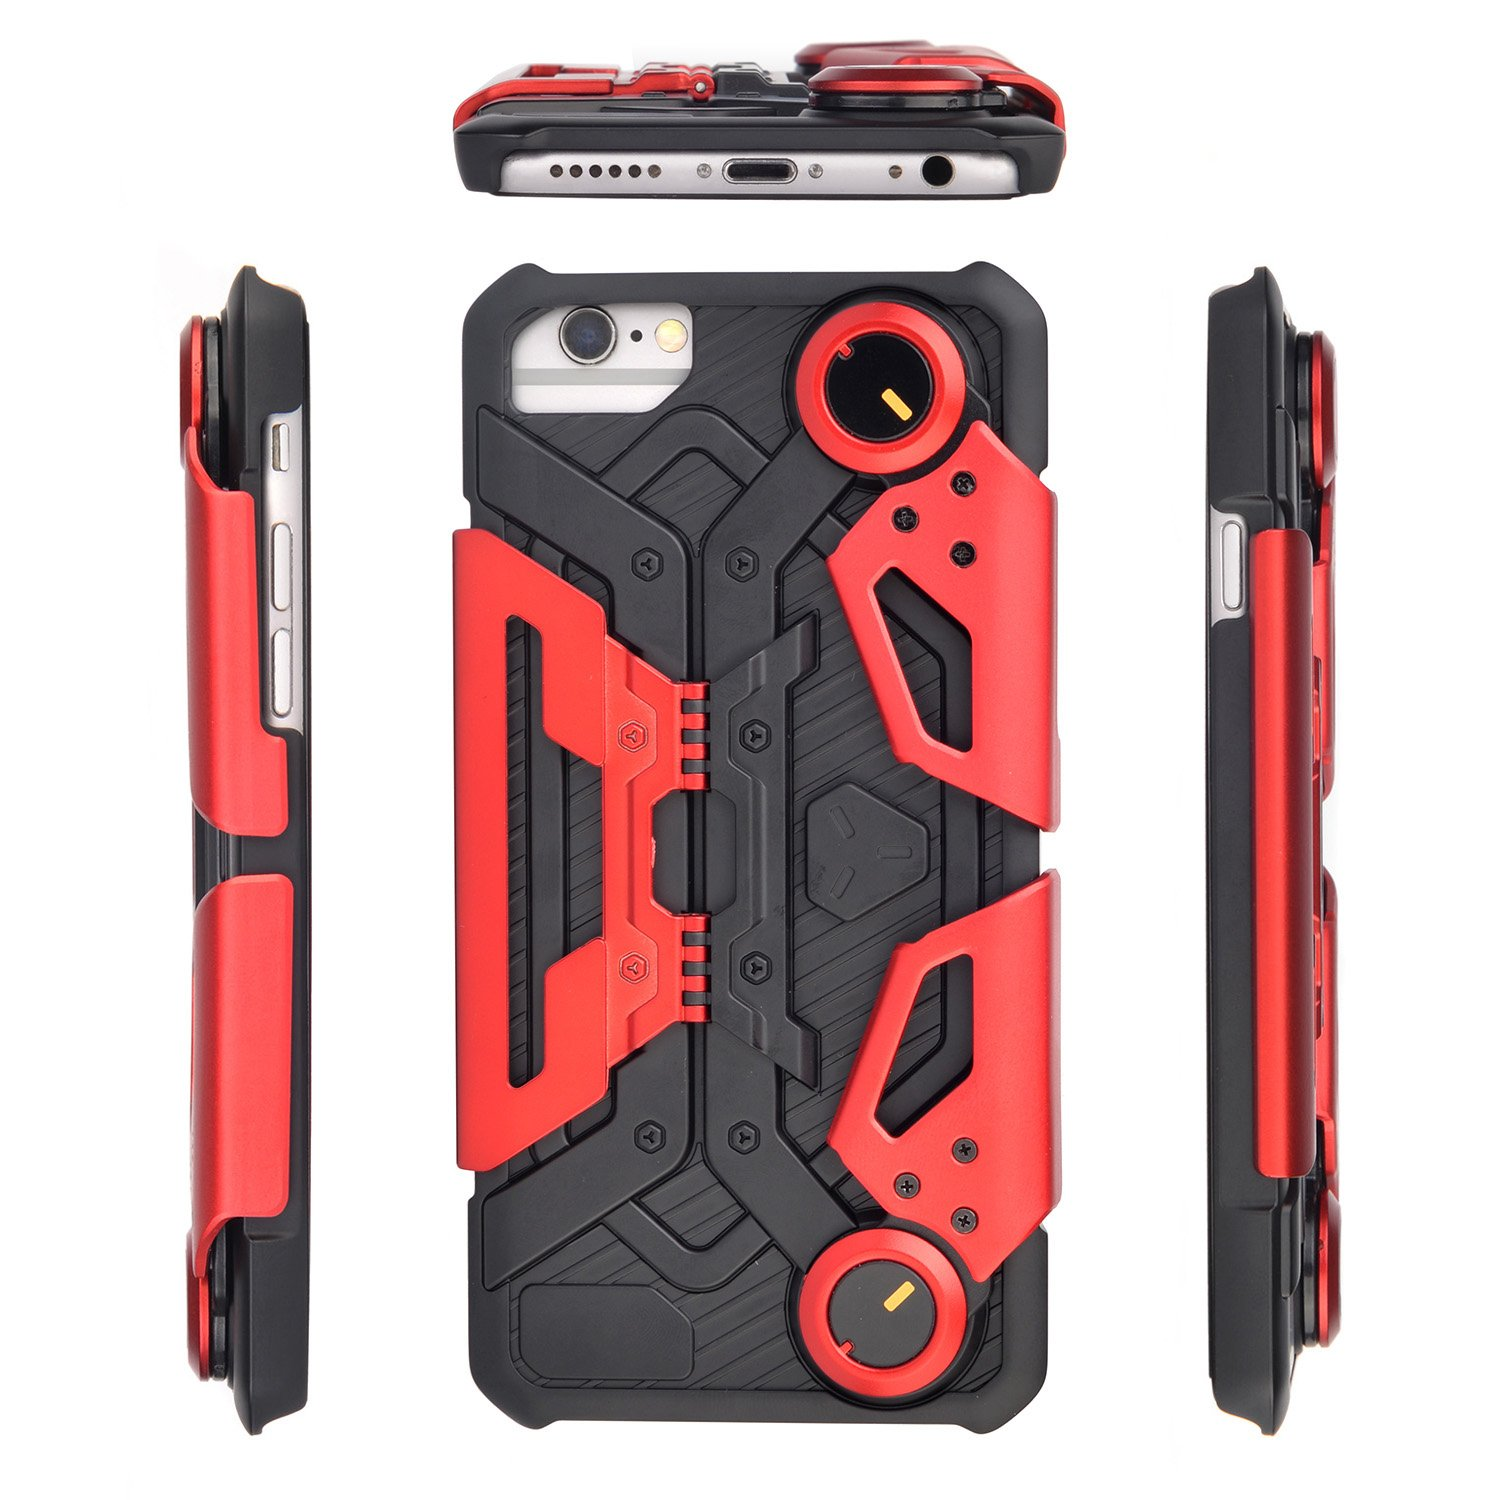 iPhone 7 Plus, iPhone 8 Plus Case with Kickstand for Gaming - Hcman Shock Proof Protective Case, Phone holder with Foldable Joystick Case for iPhone 6 Plus / 6s Plus Red